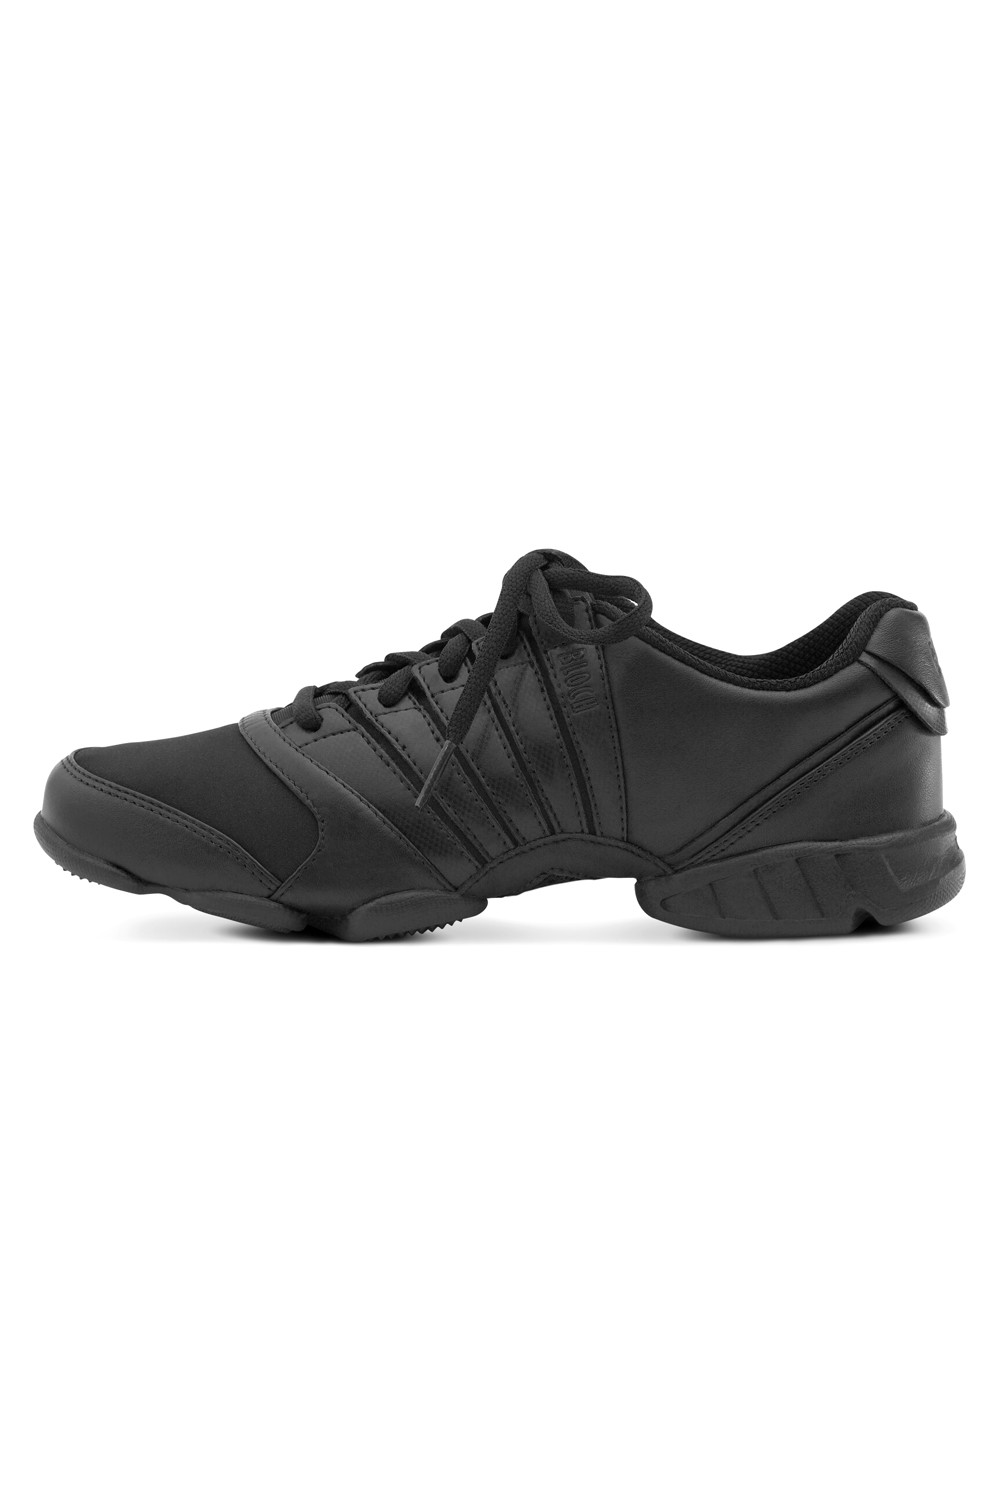 Trinity - Uomo Men's Dance Sneakers